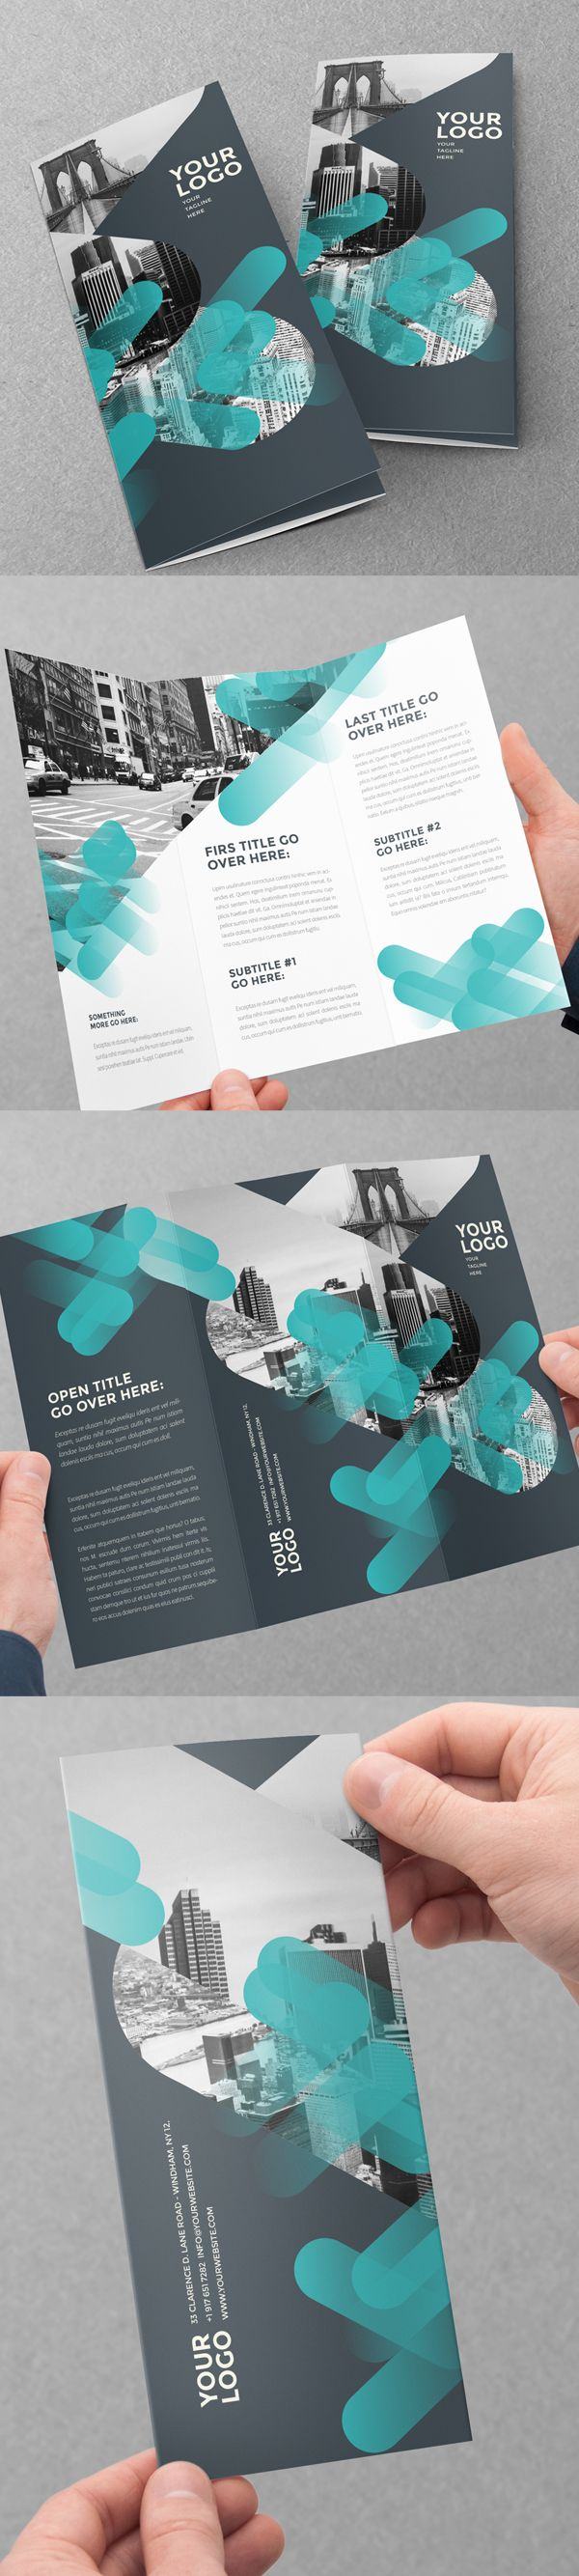 Modern Creative Tri-Fold Brochure Design #booklet #brochuredesign…